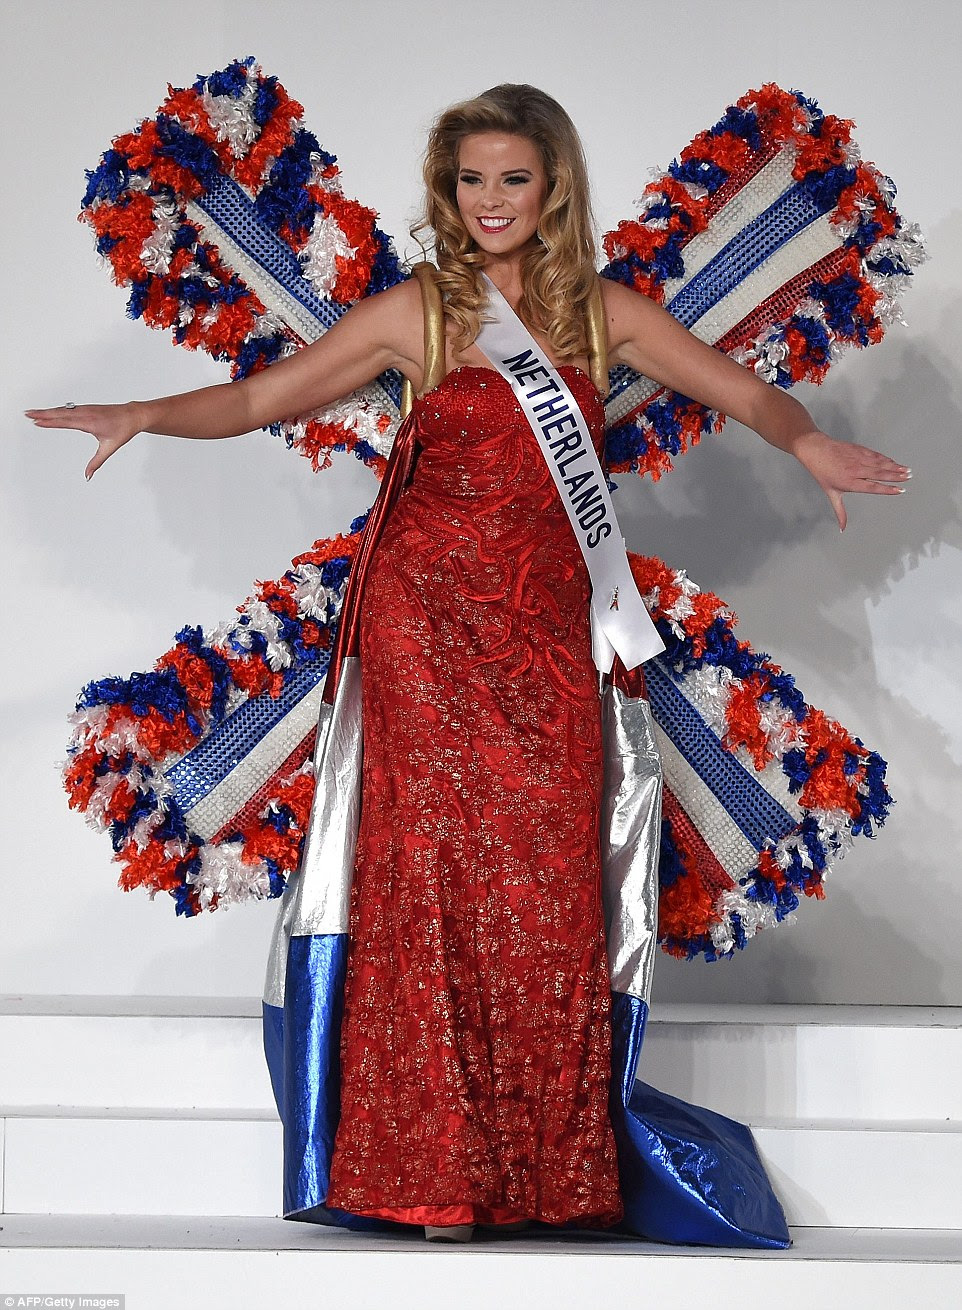 There's no prizes for guessing what inspired Miss Netherlands' outfit. Rachel van der Meulen went all out patriotic dressed in her nation's flag colours of red white and blue, plus she adorned Holland's icon on her back in the form of windmill wings.